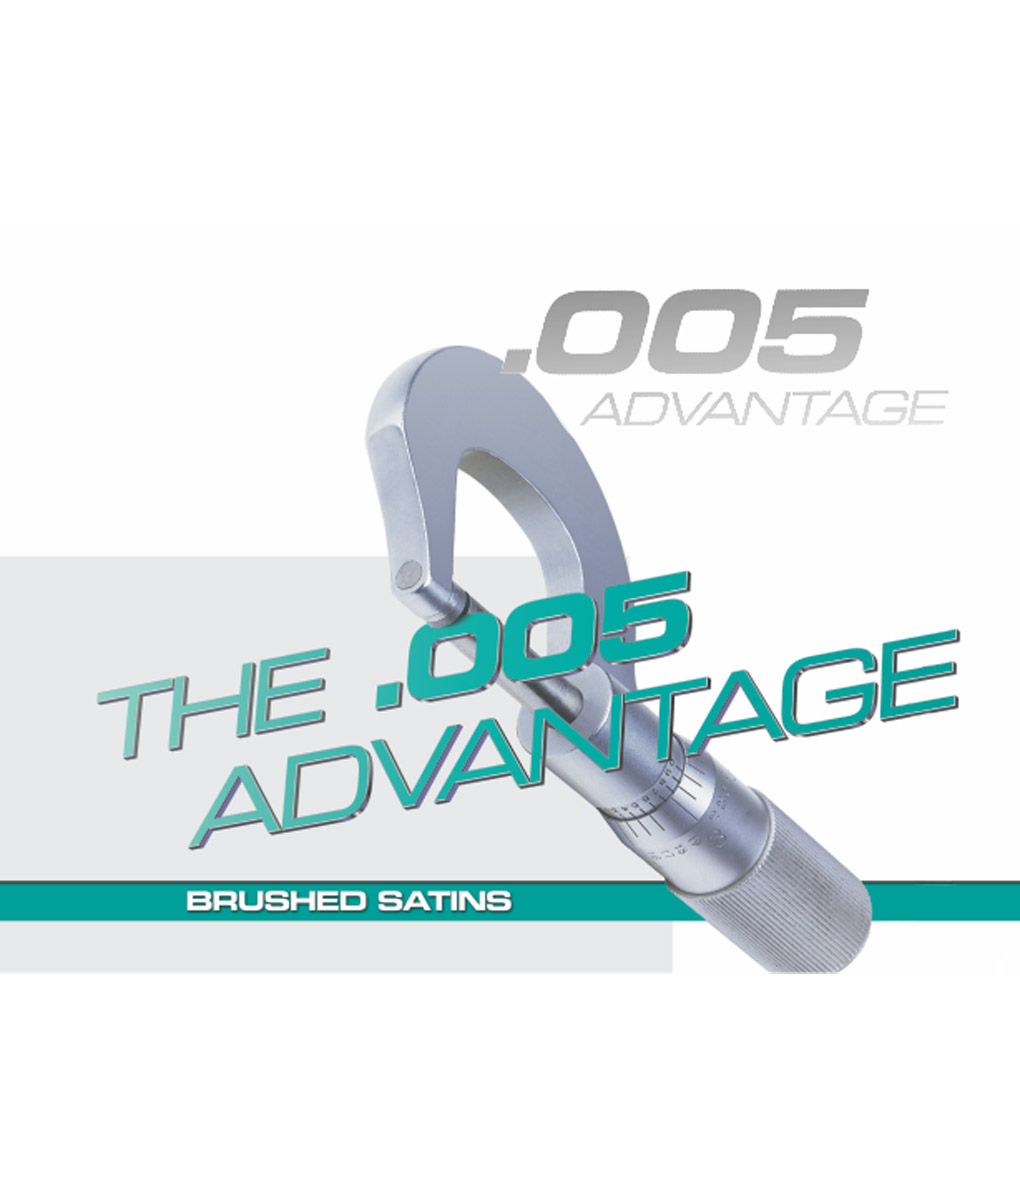 Ipi Quote Ipi005 Advantage Brushed Satins  Main Trophy Supply